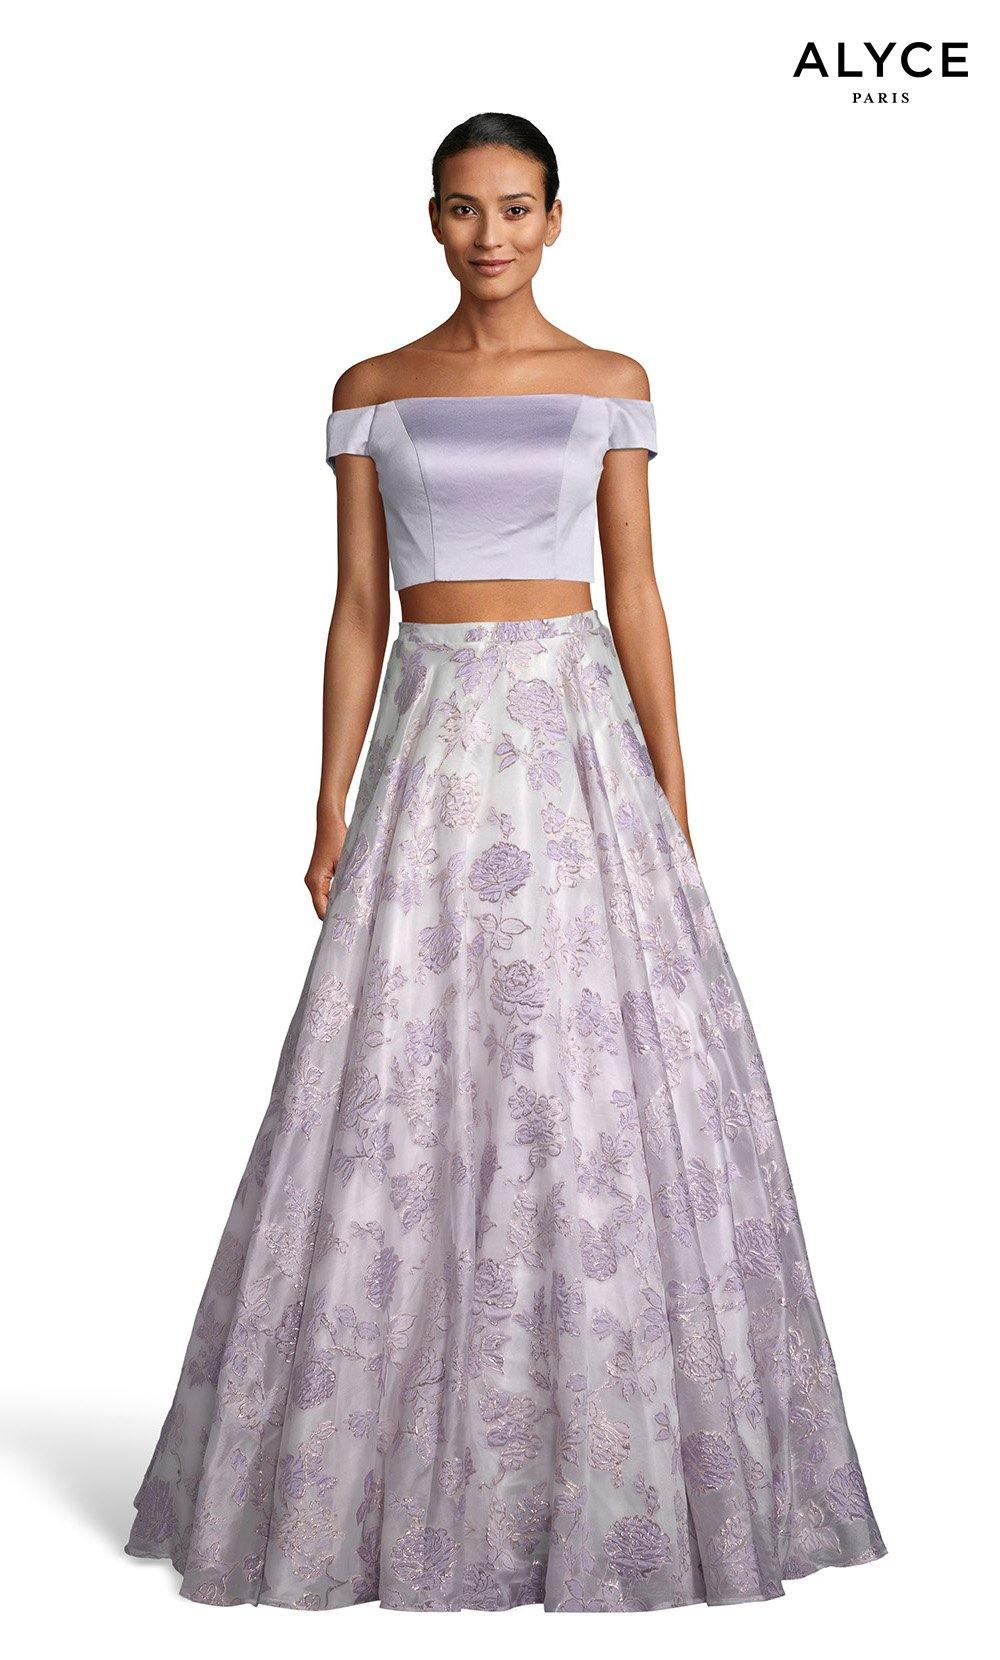 Ice Lilac-Diamond White off the shoulder two piece prom dress with satin crop top and a floral skirt